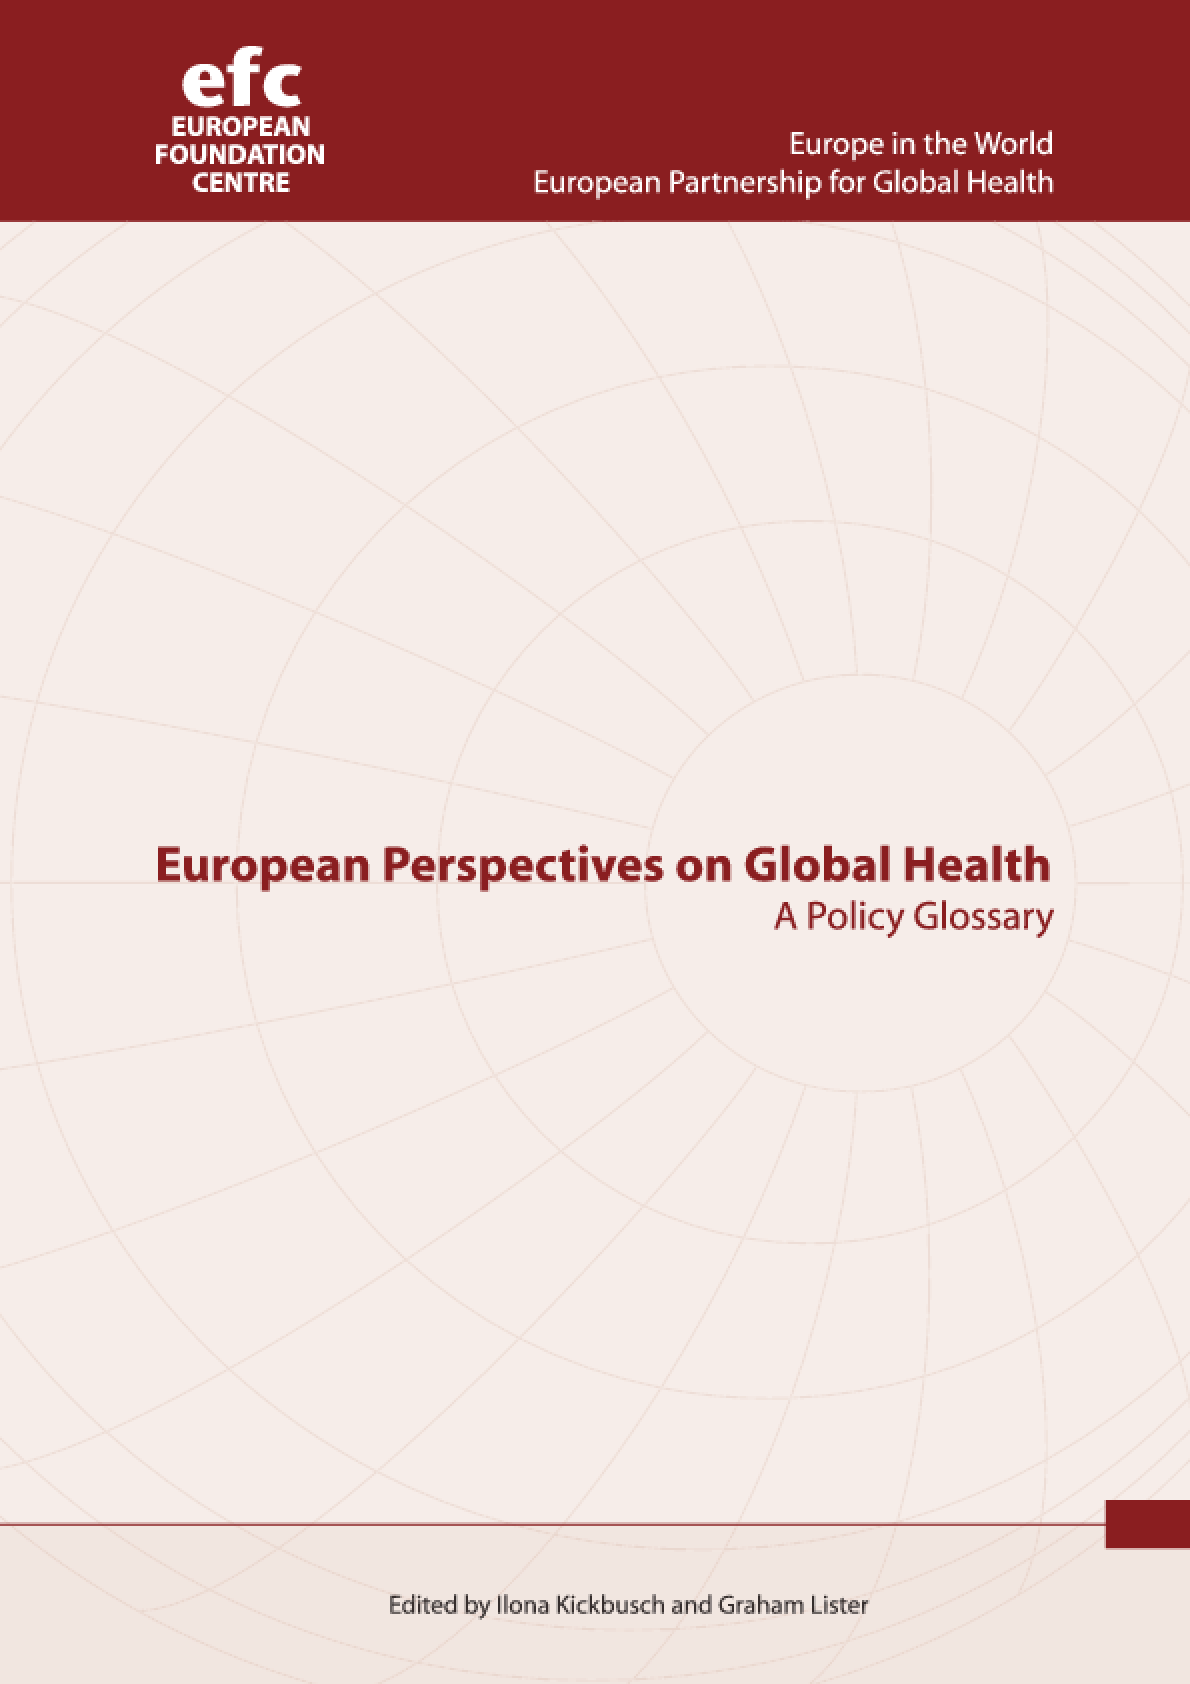 European Perspectives on Global Health: A Policy Glossary